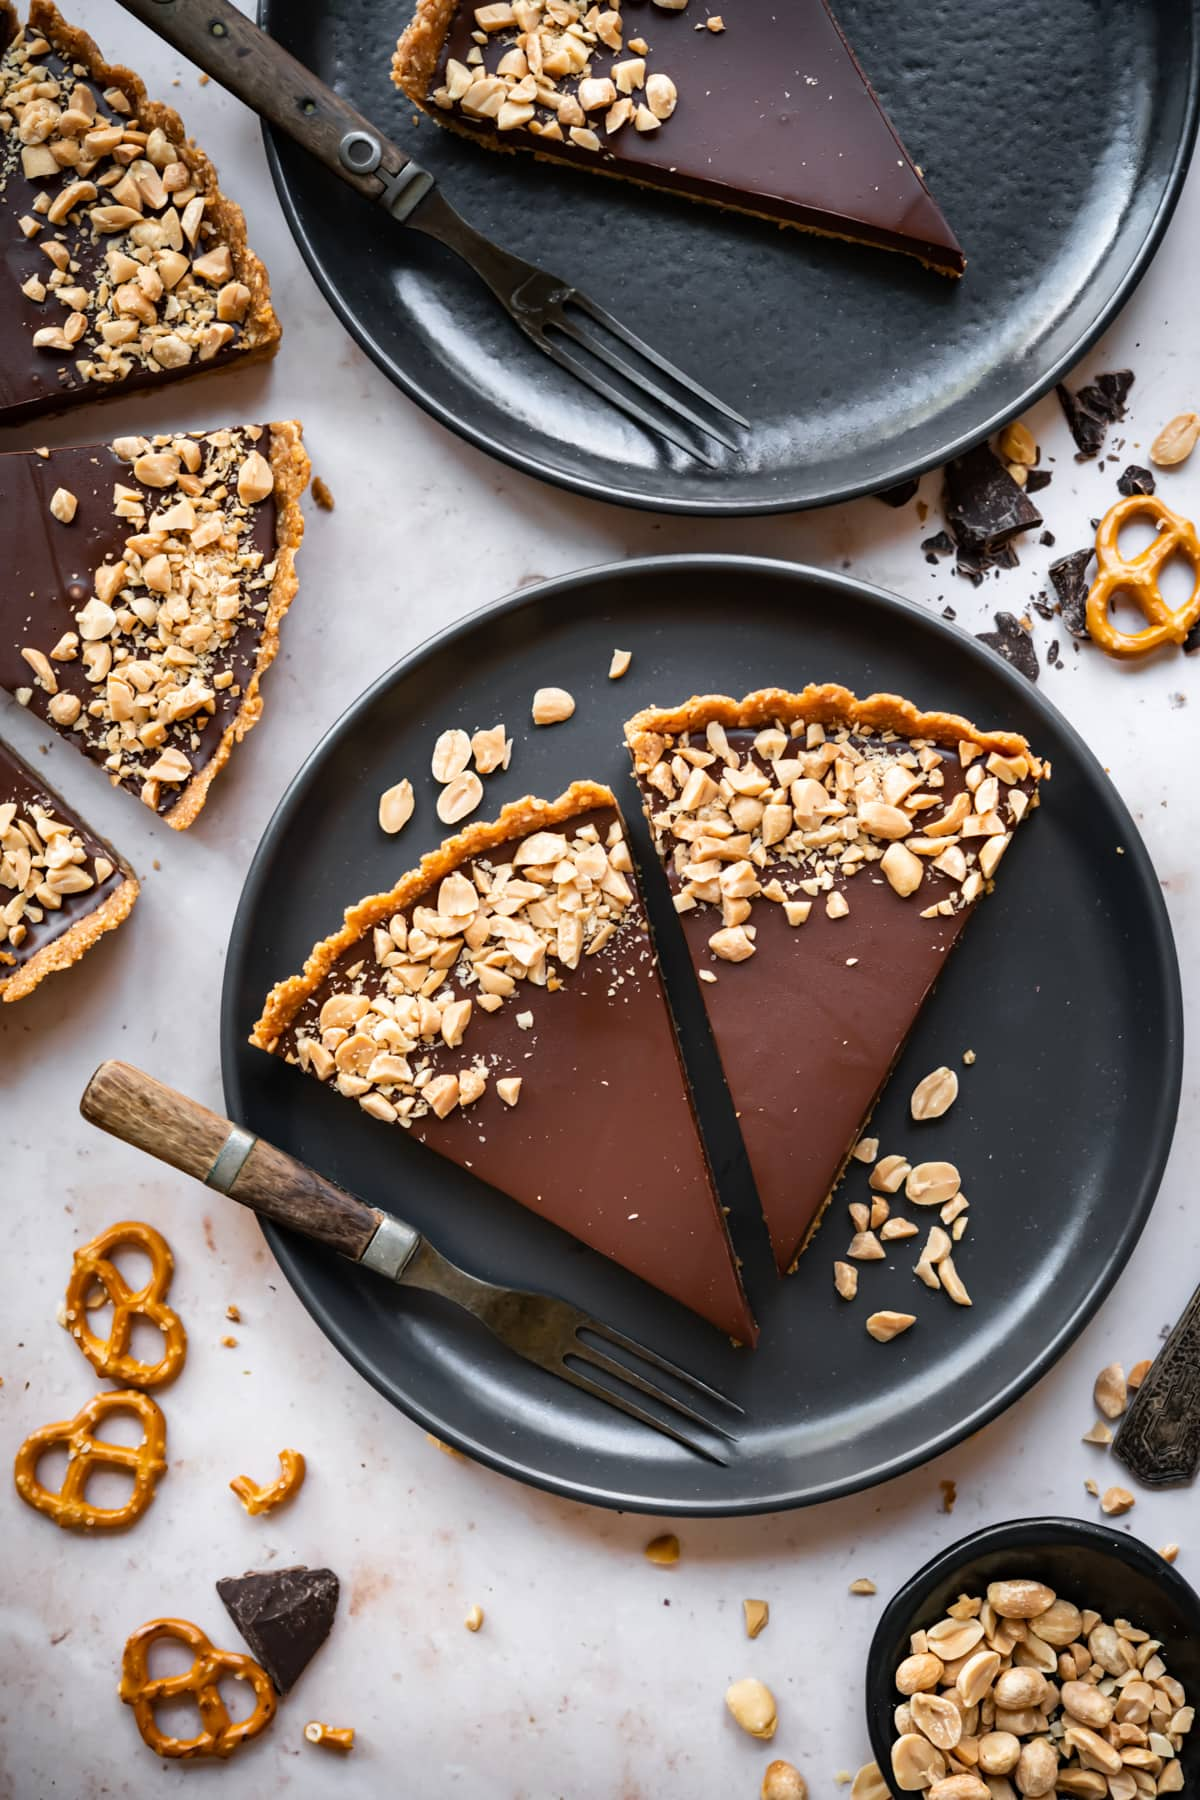 overhead view of 2 slices of chocolate peanut butter pretzel tart on a black plate.